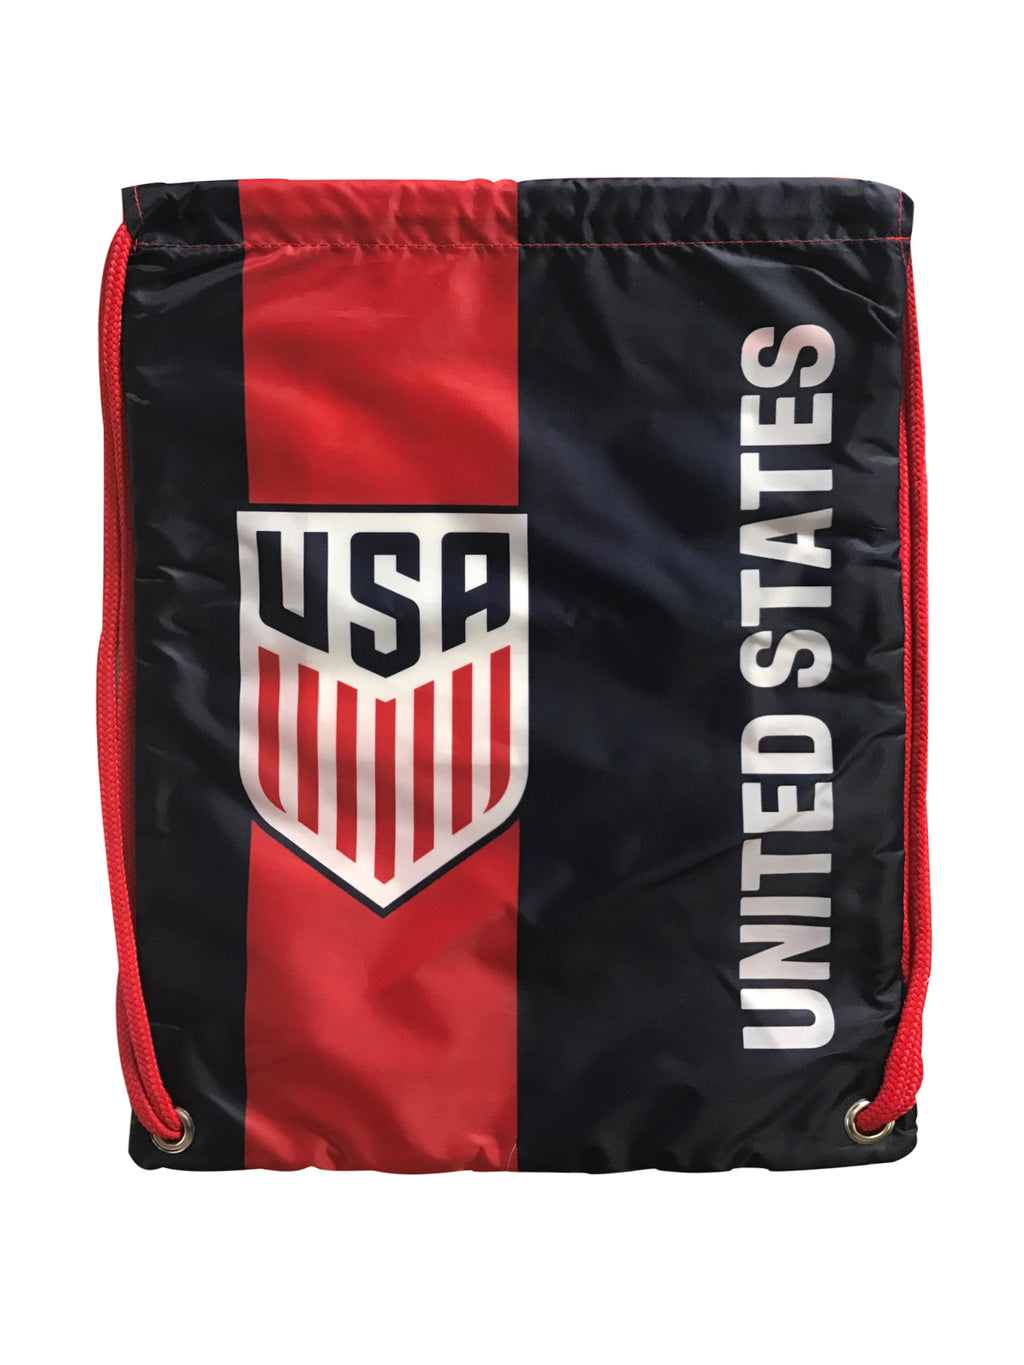 U.S. Soccer Drawstring Cinch Bag